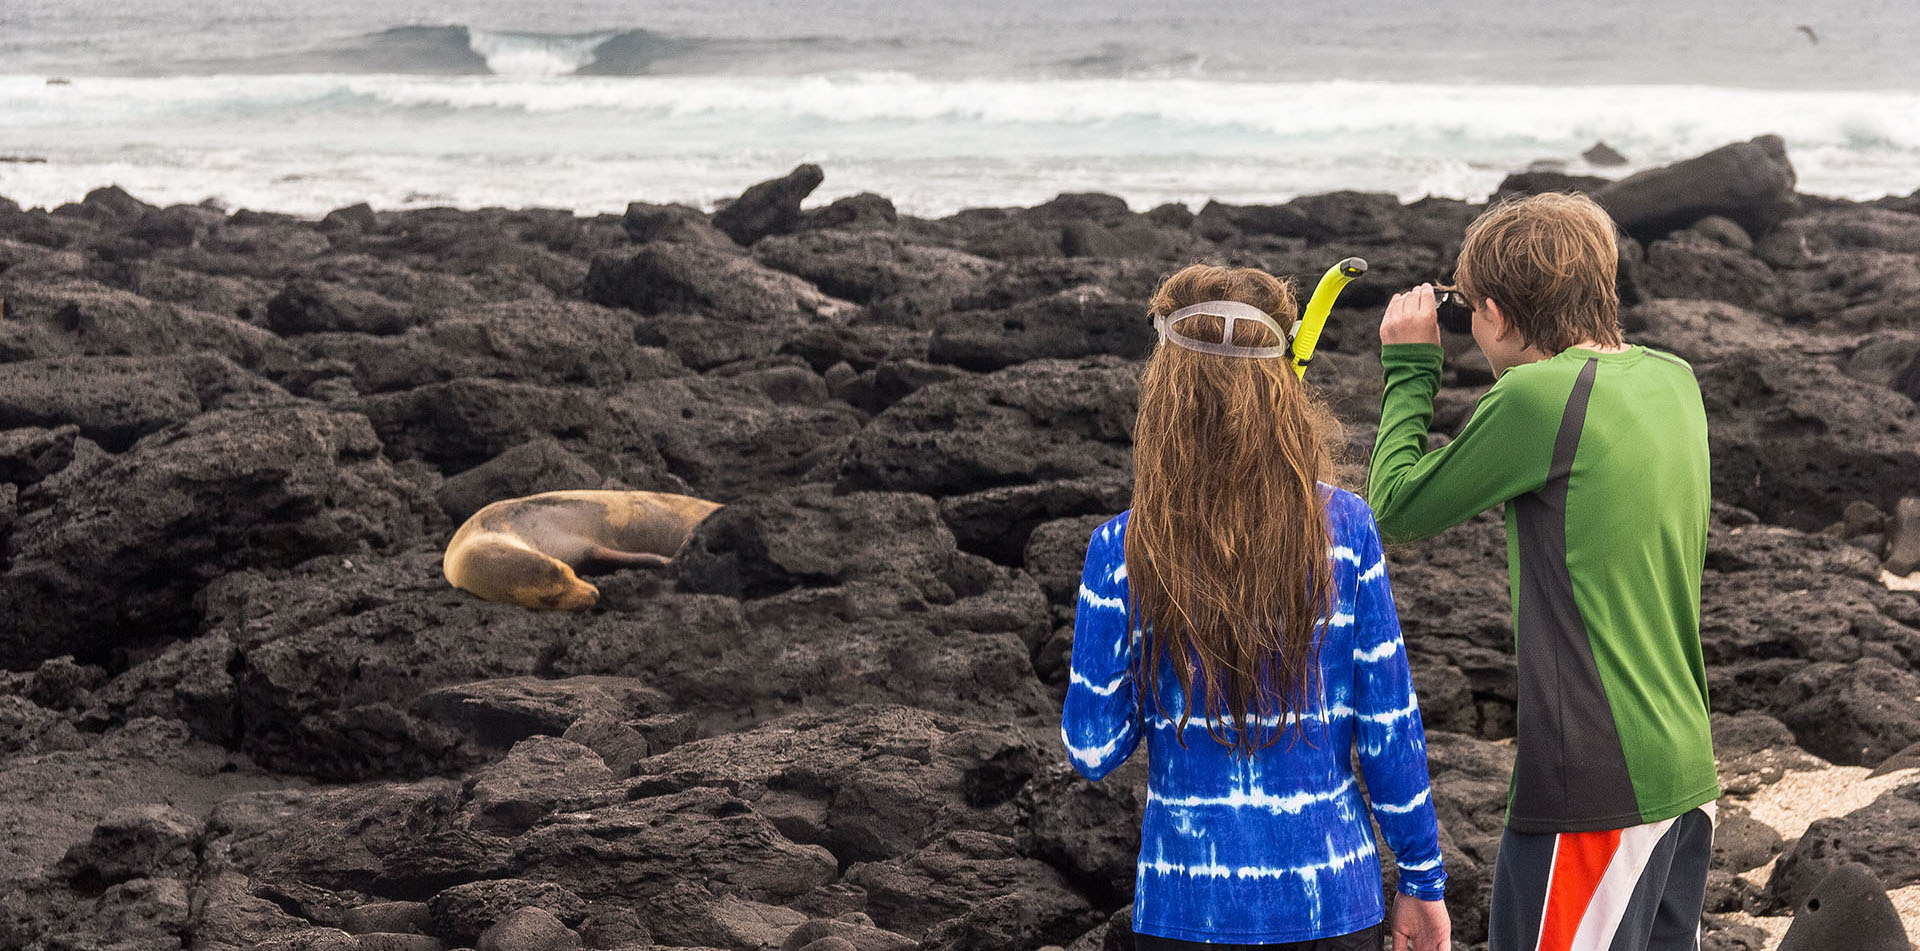 Kids looking at a sea lion on the beach, Galapagos Island